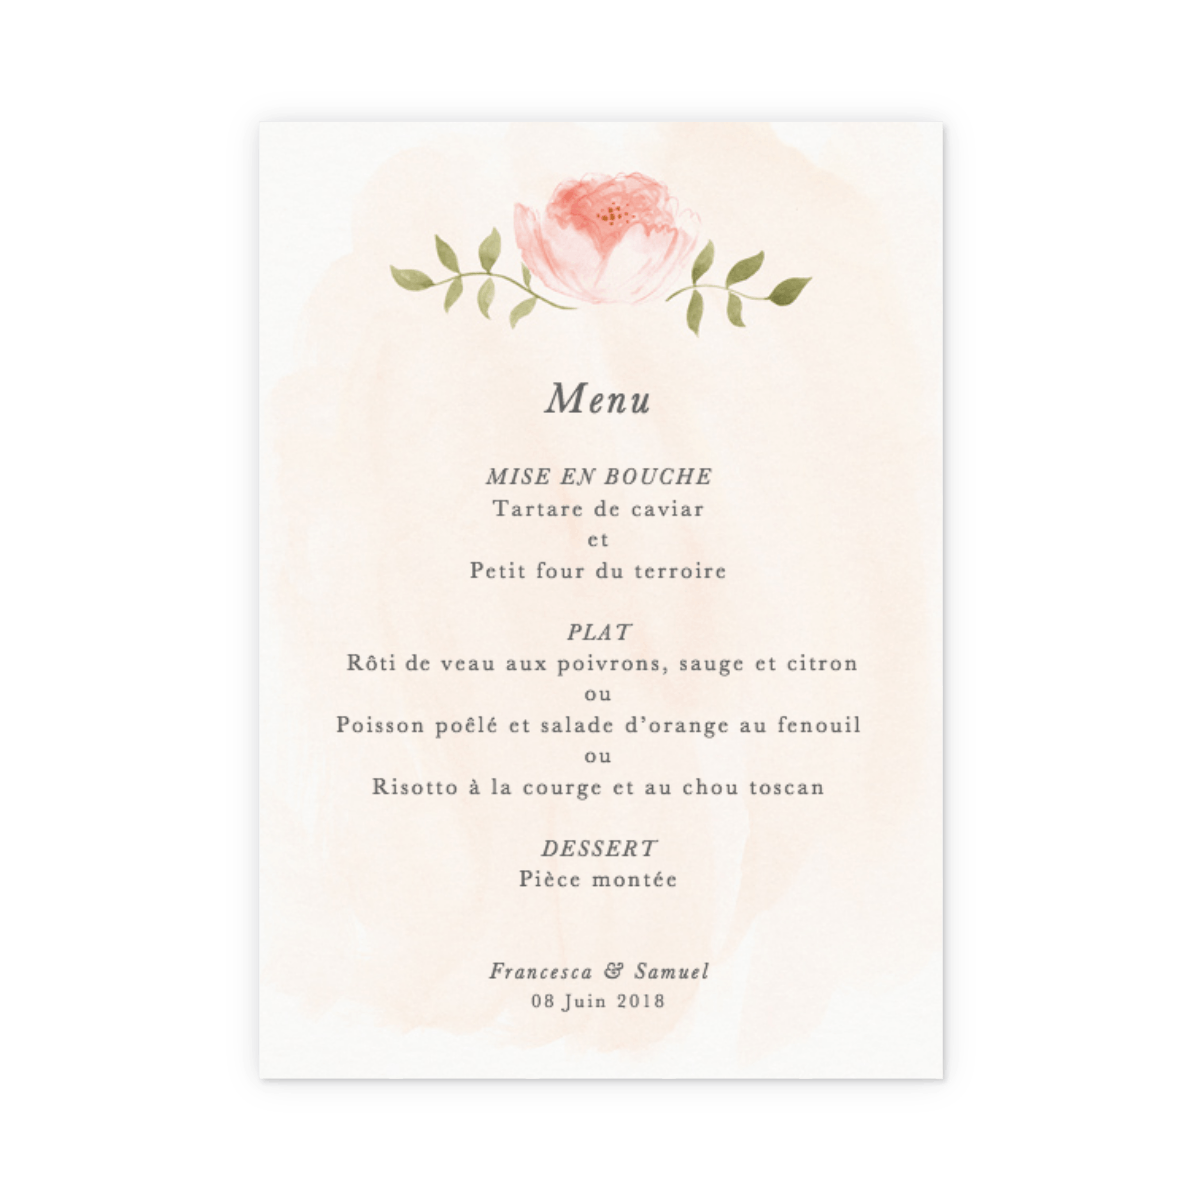 Https%3a%2f%2fwww.papier.com%2fproduct image%2f44413%2f4%2fblooming peonies 5242 avant 1534865527.png?ixlib=rb 1.1